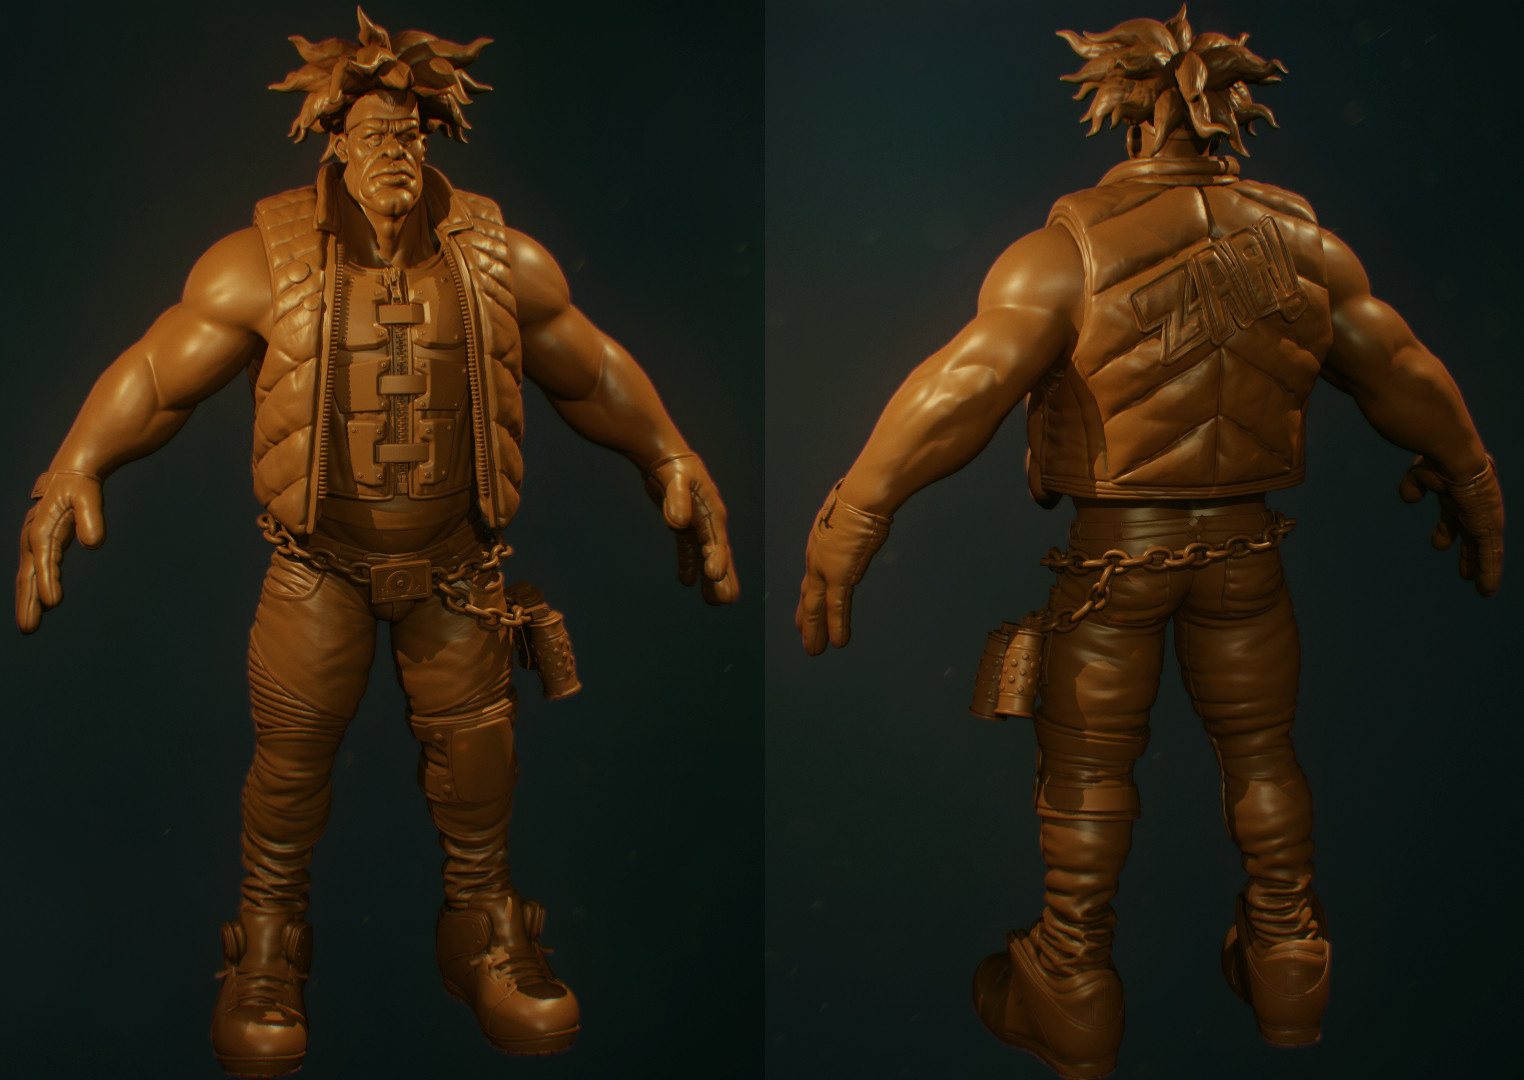 Rendering the sculpt in Marmoset Toolbag 3 - I find this gives me a bette ridea of what the final product will look like.